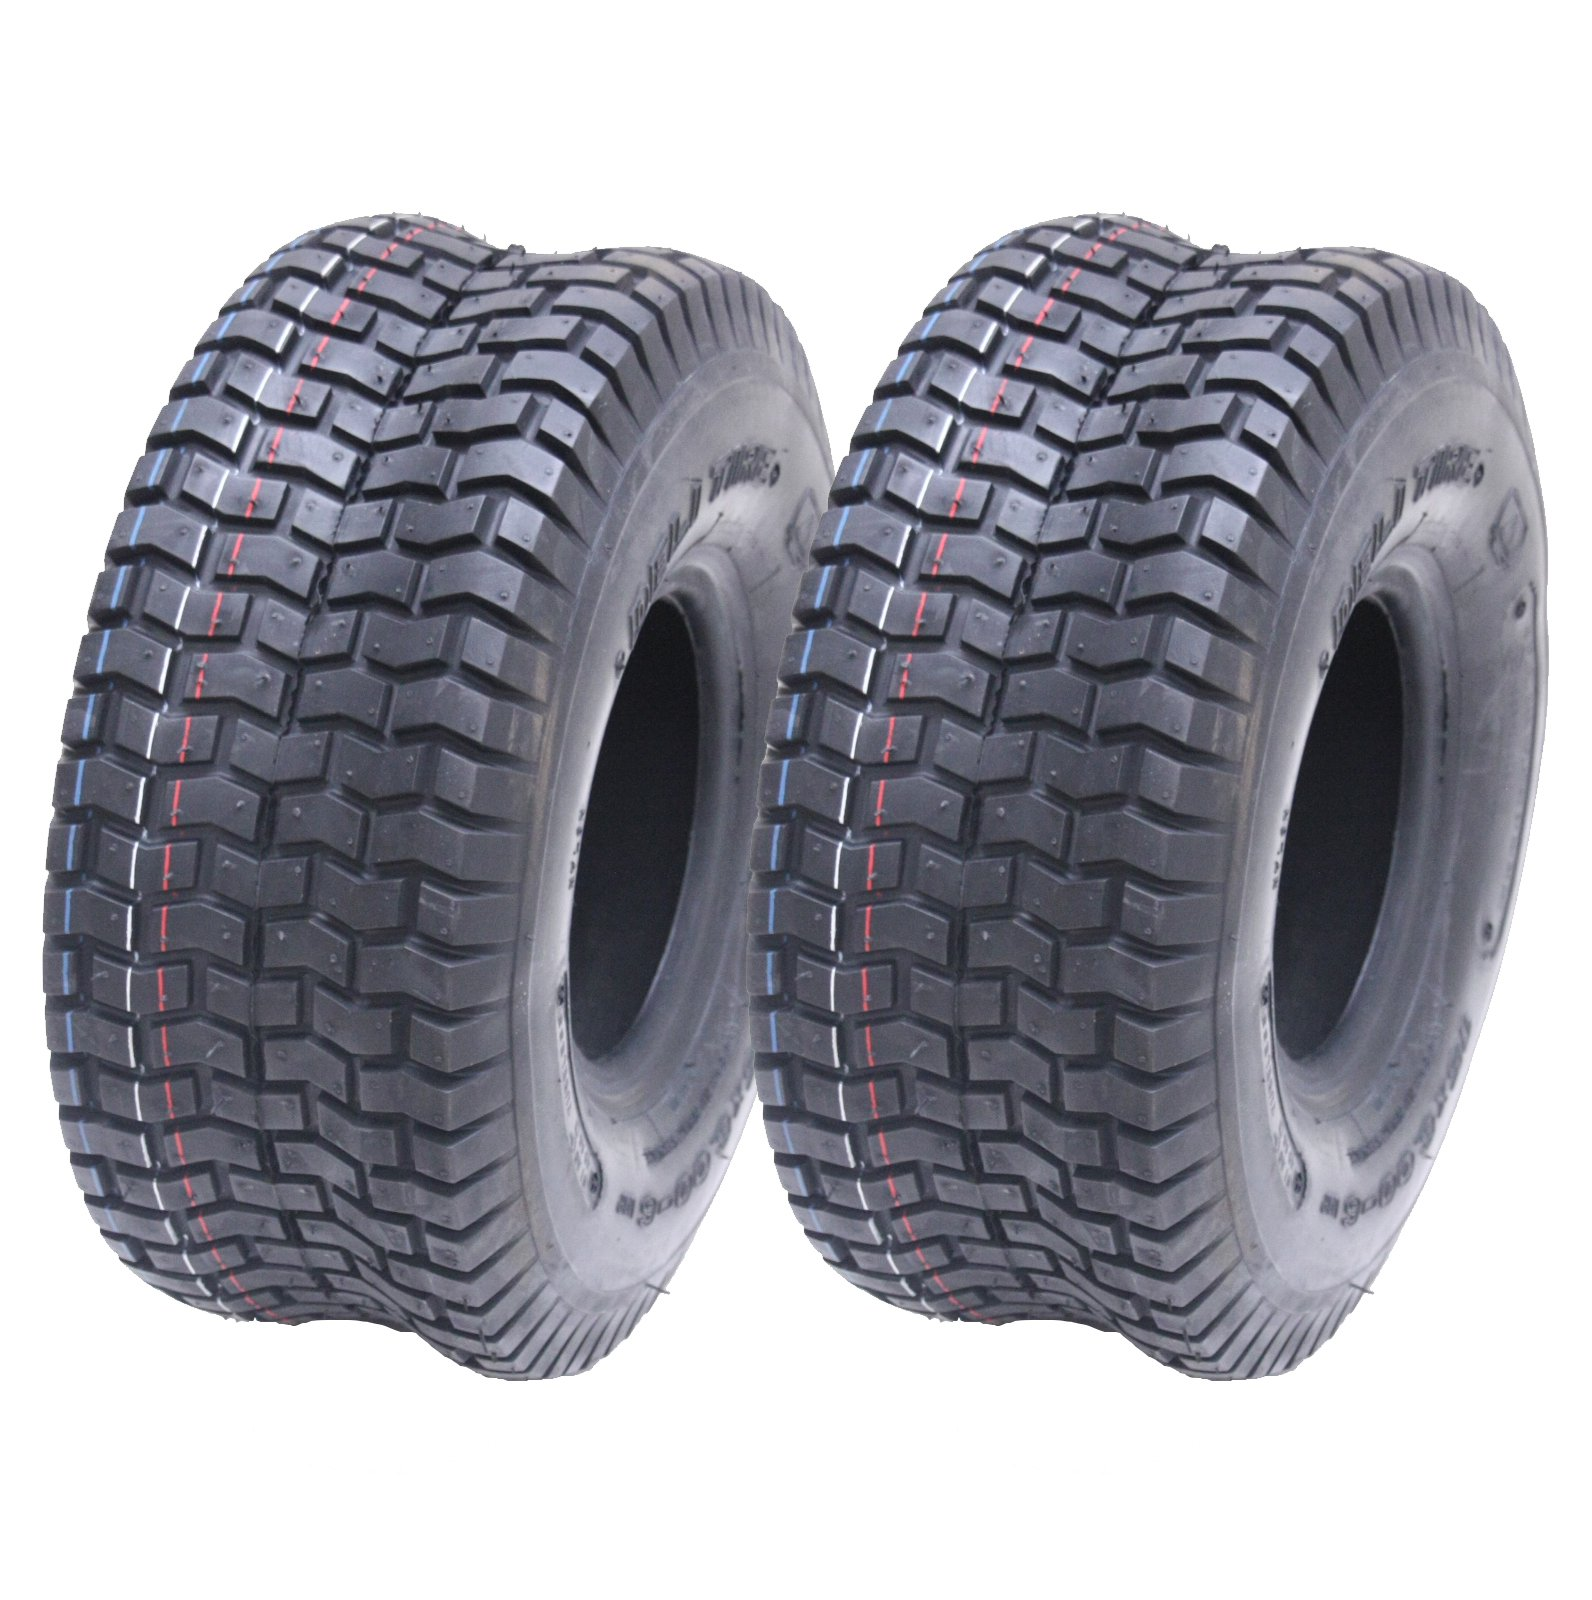 TWO 15X6.00-6 LAWN MOWER TRACTOR TIRES HEAVY DUTY 4 PLY RATED TUBELESS 15 600 6